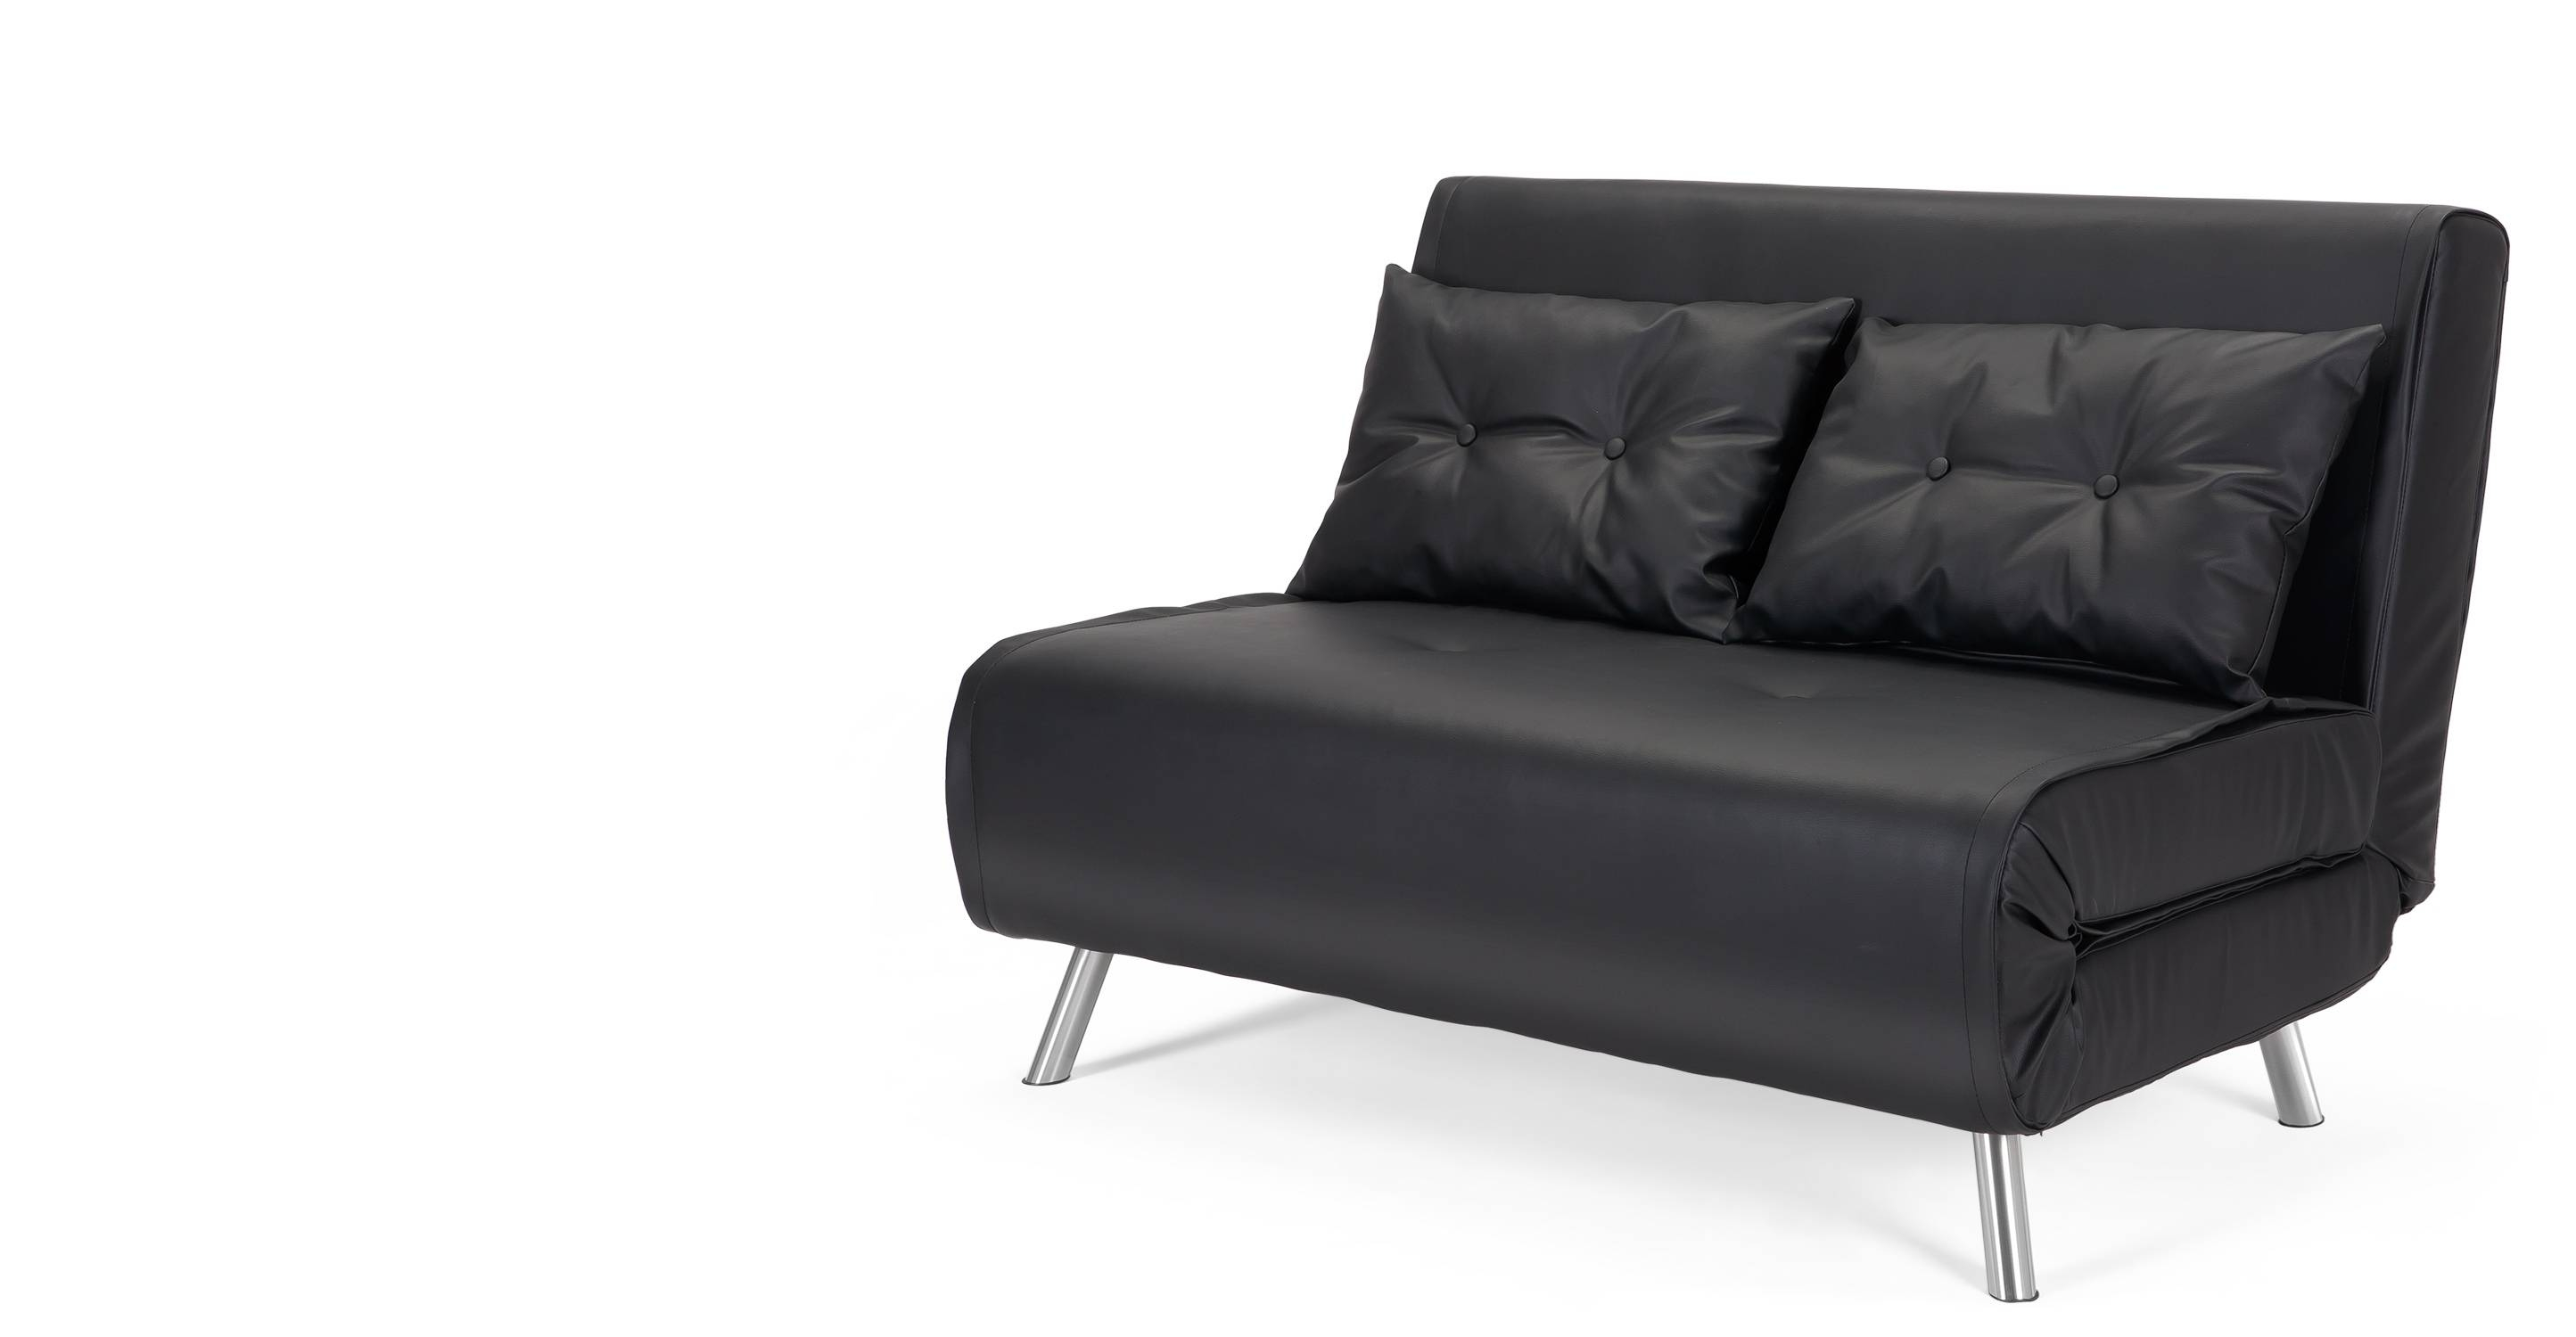 Sofas Center : Small Sofa Chair Simple And Stylish Leather Throughout Small Sofas And Chairs (View 15 of 15)